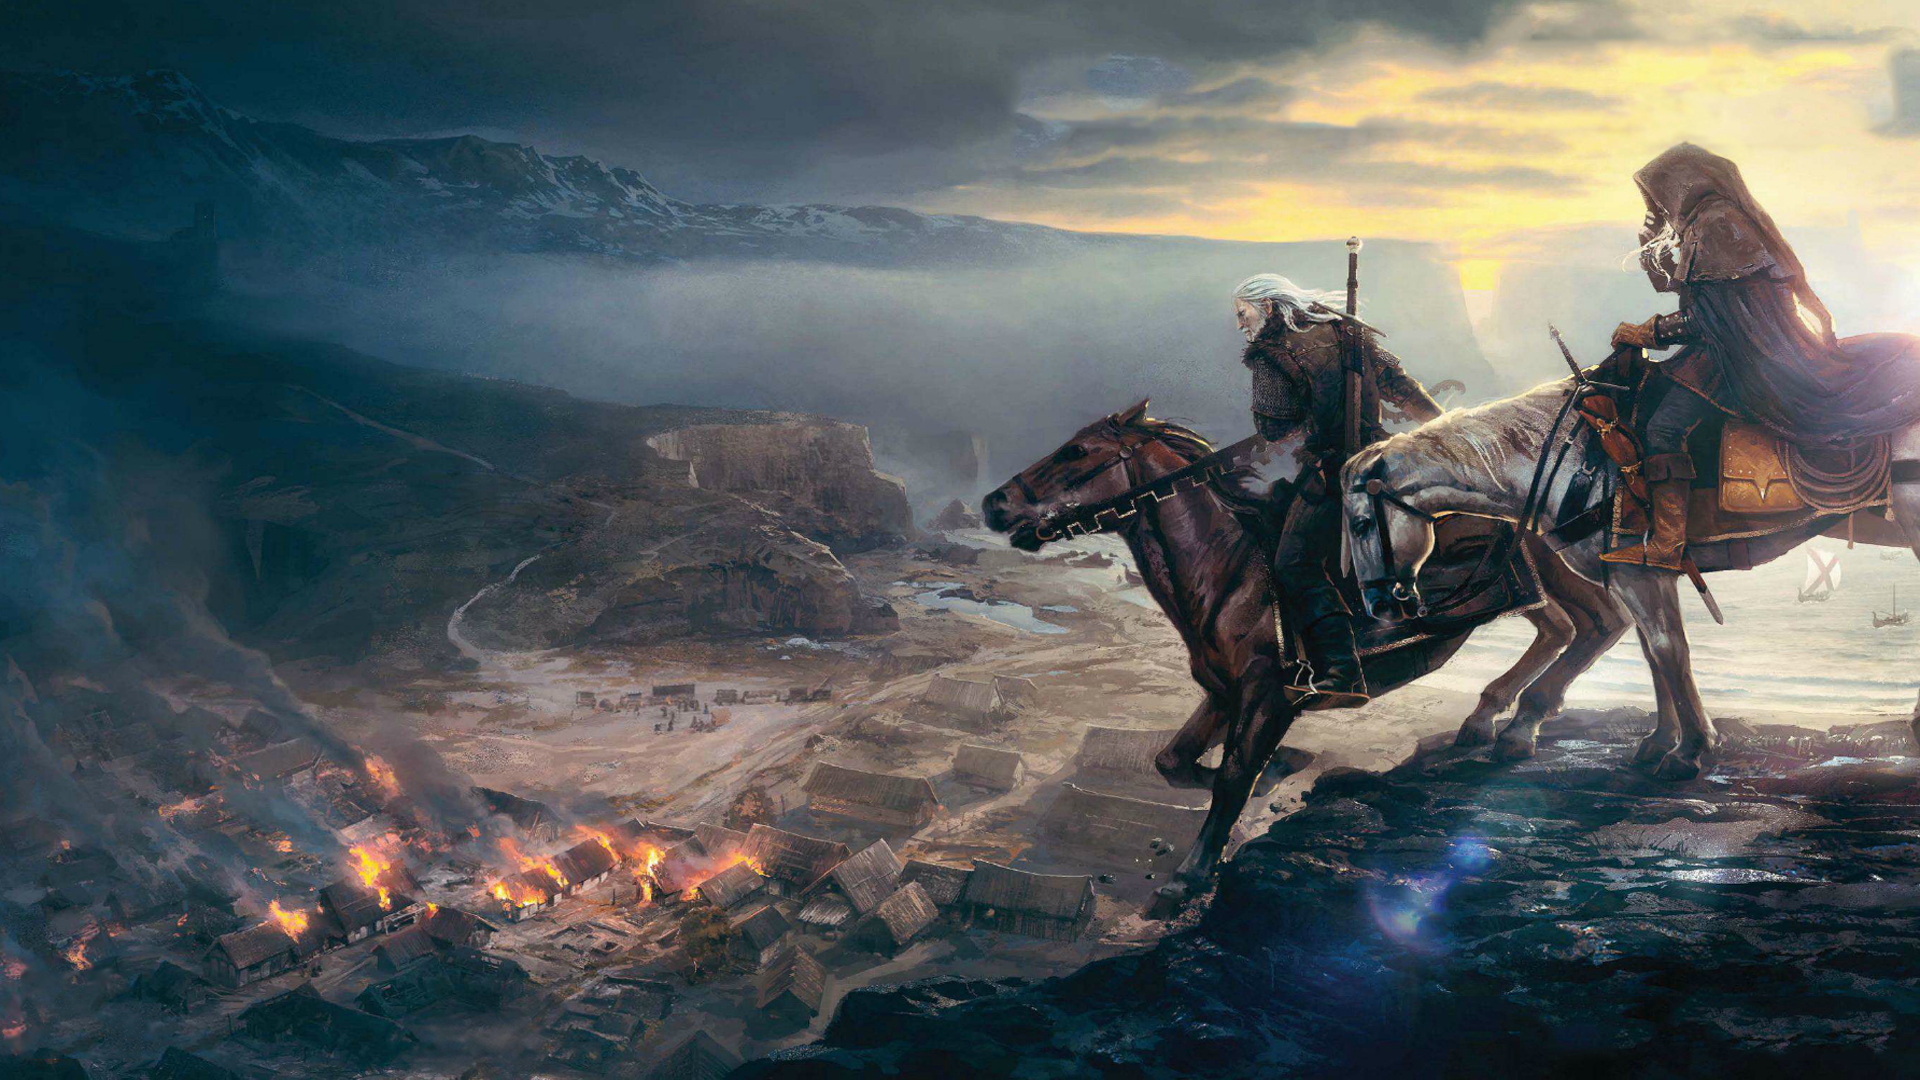 The Witcher - Witcher 3: Wild Hunt, the